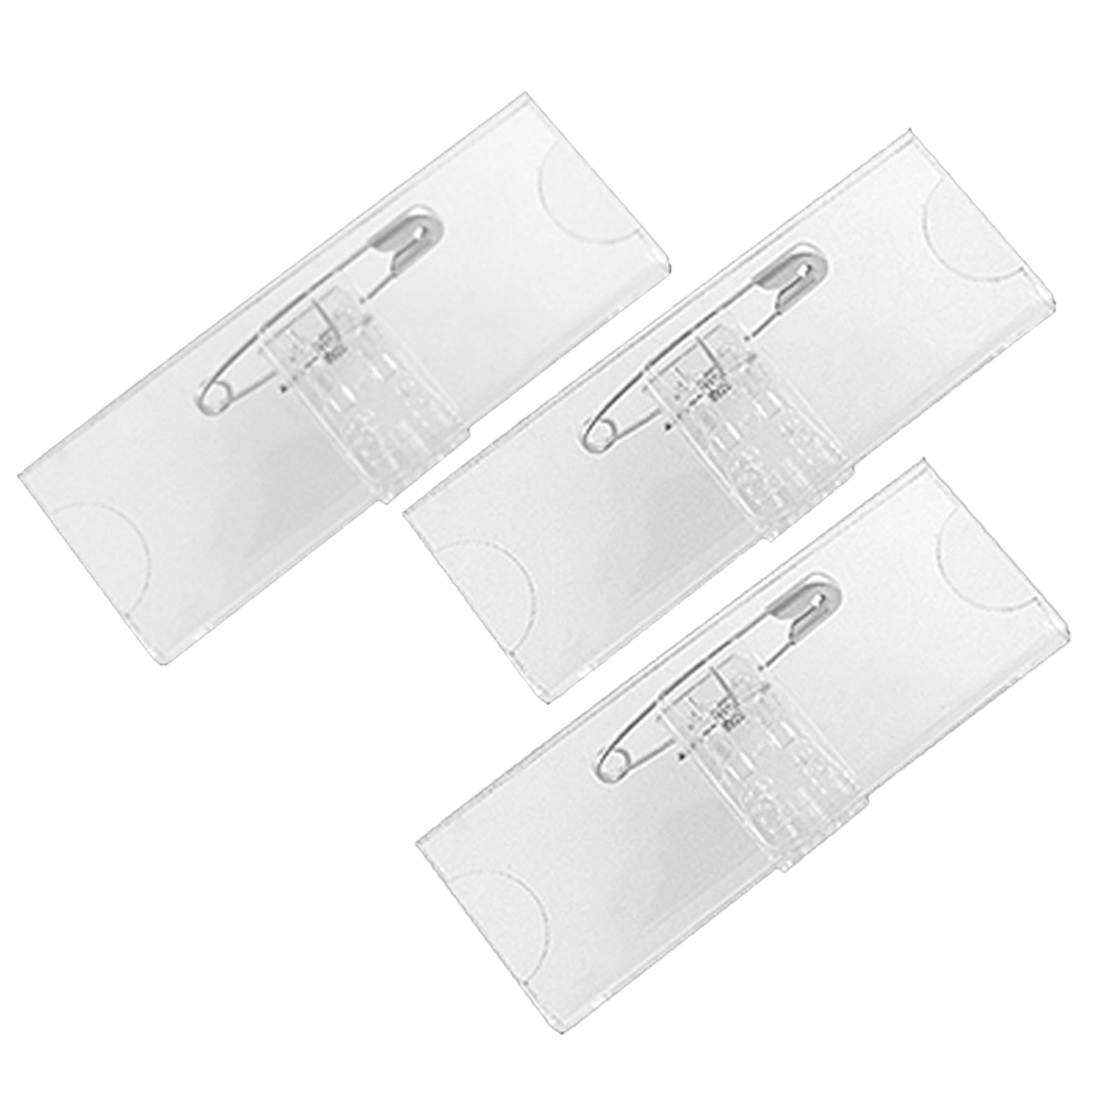 Safetypin Clear Hard Plastic Name Tag Clip Holder 3 Pcs Ws